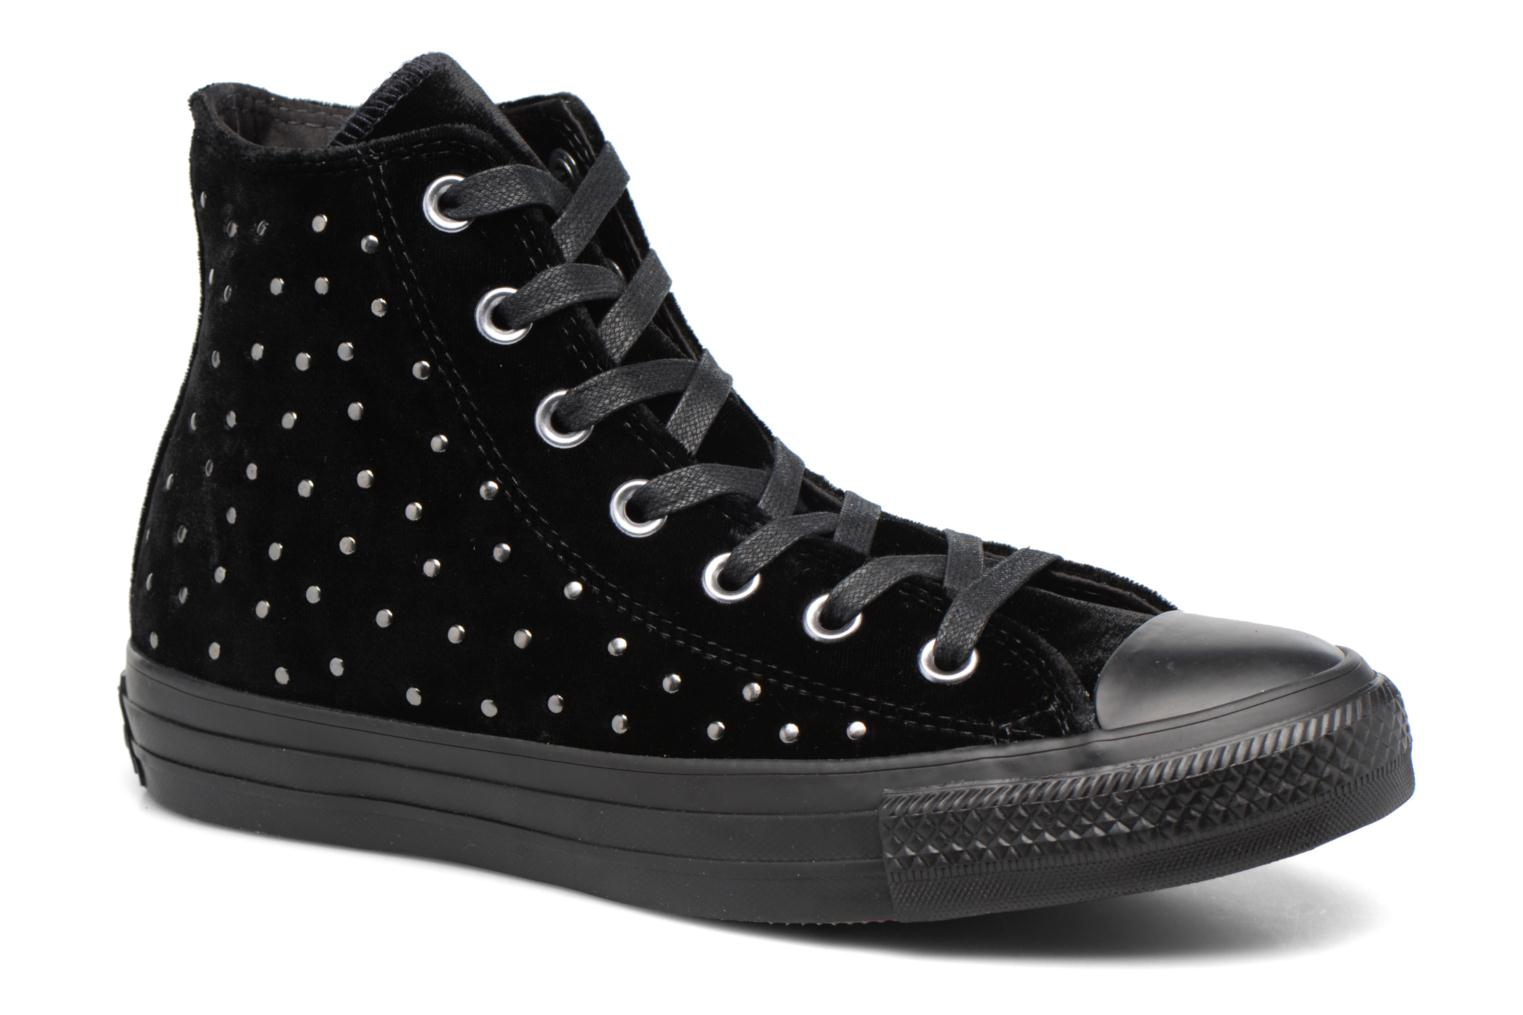 967da3707a833 Converse Chuck Taylor All Star Velvet Studs Hi coolzone.it